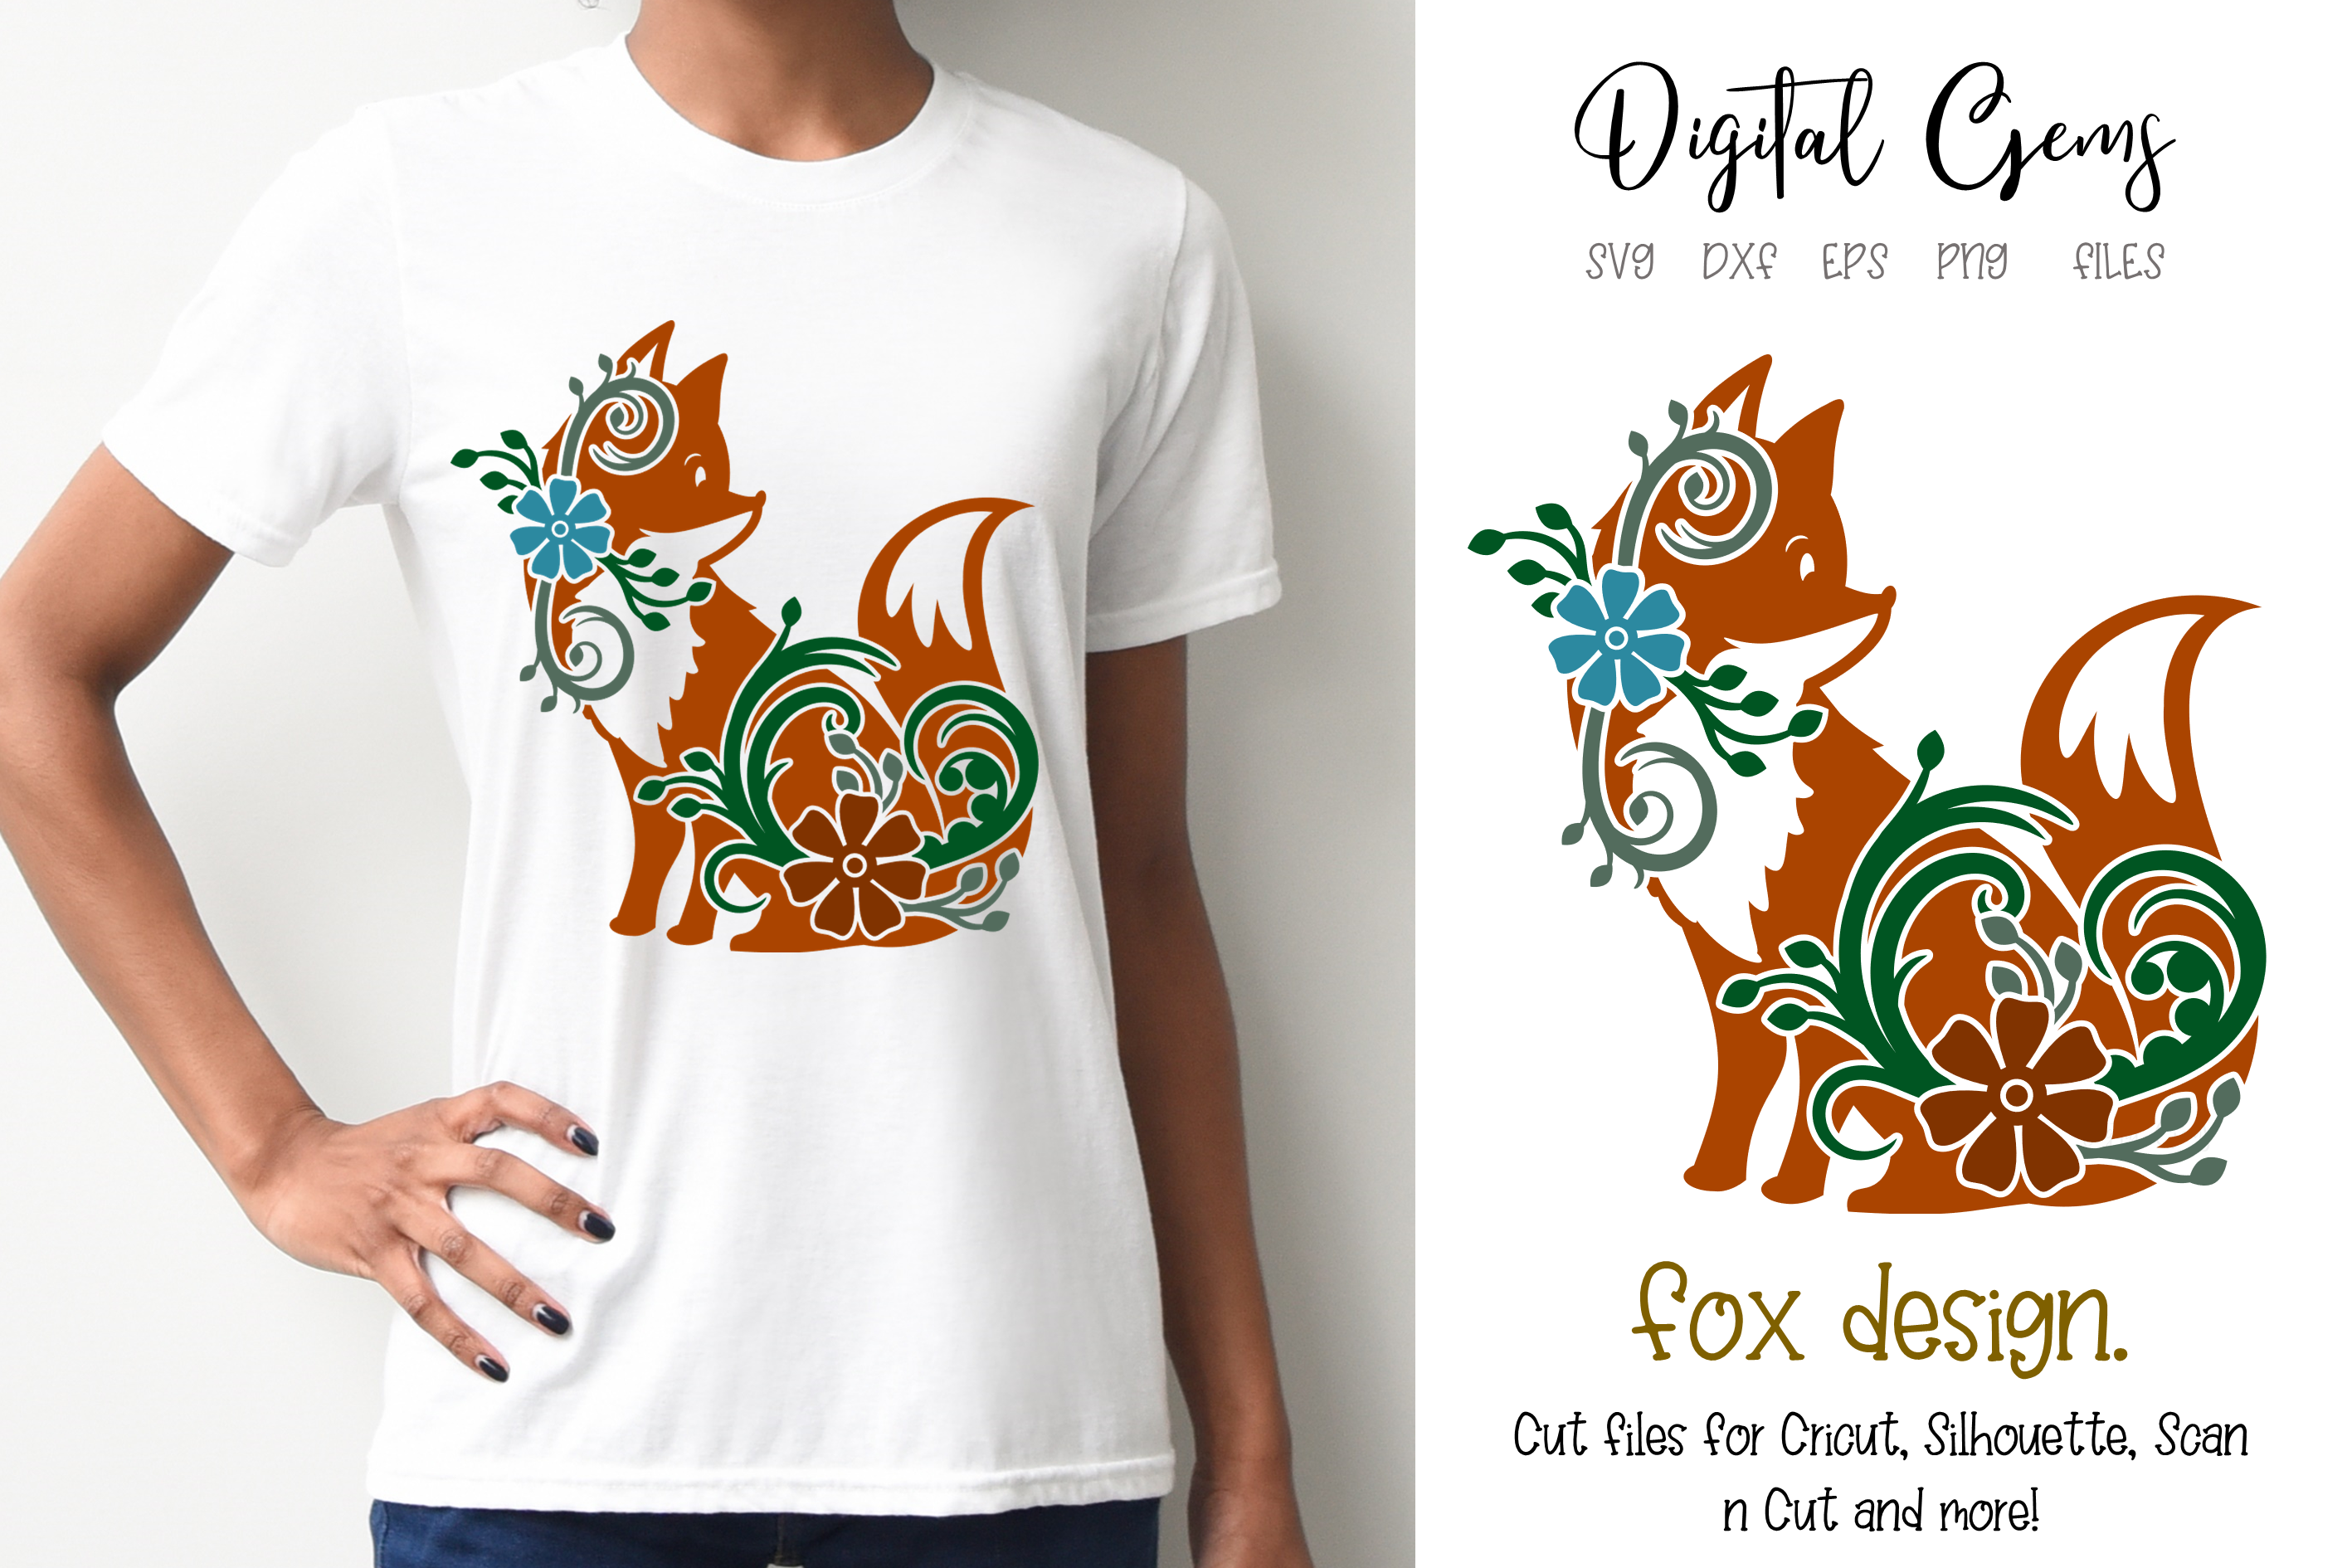 Download Free Fox Design Graphic By Digital Gems Creative Fabrica for Cricut Explore, Silhouette and other cutting machines.